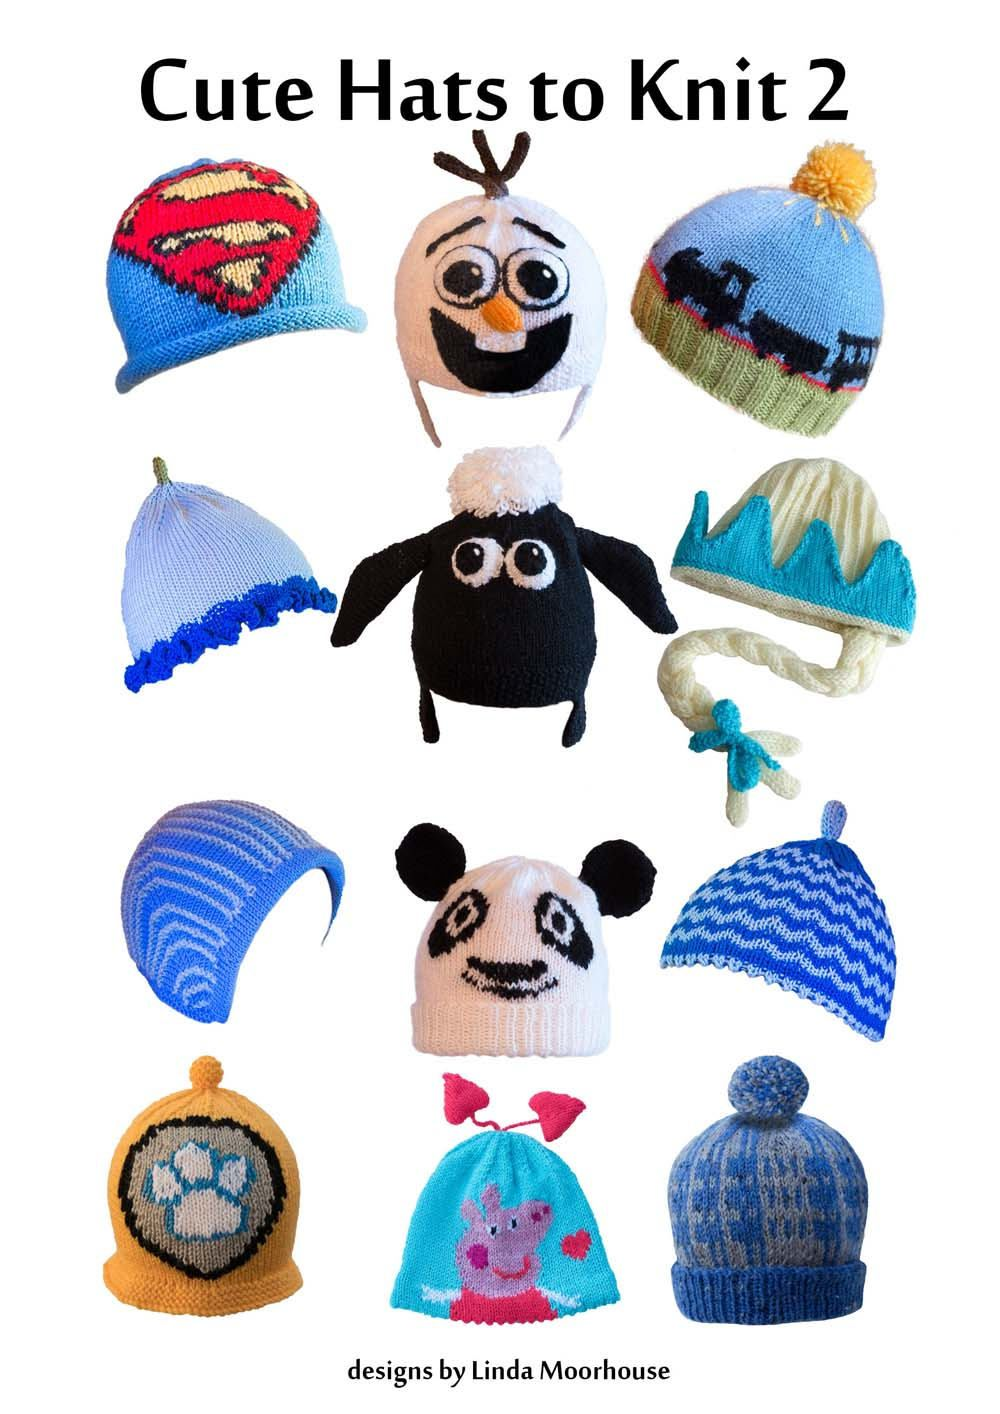 Cute hats to knit for children 2 - PDF knitting pattern - Olaf, Elsa ...